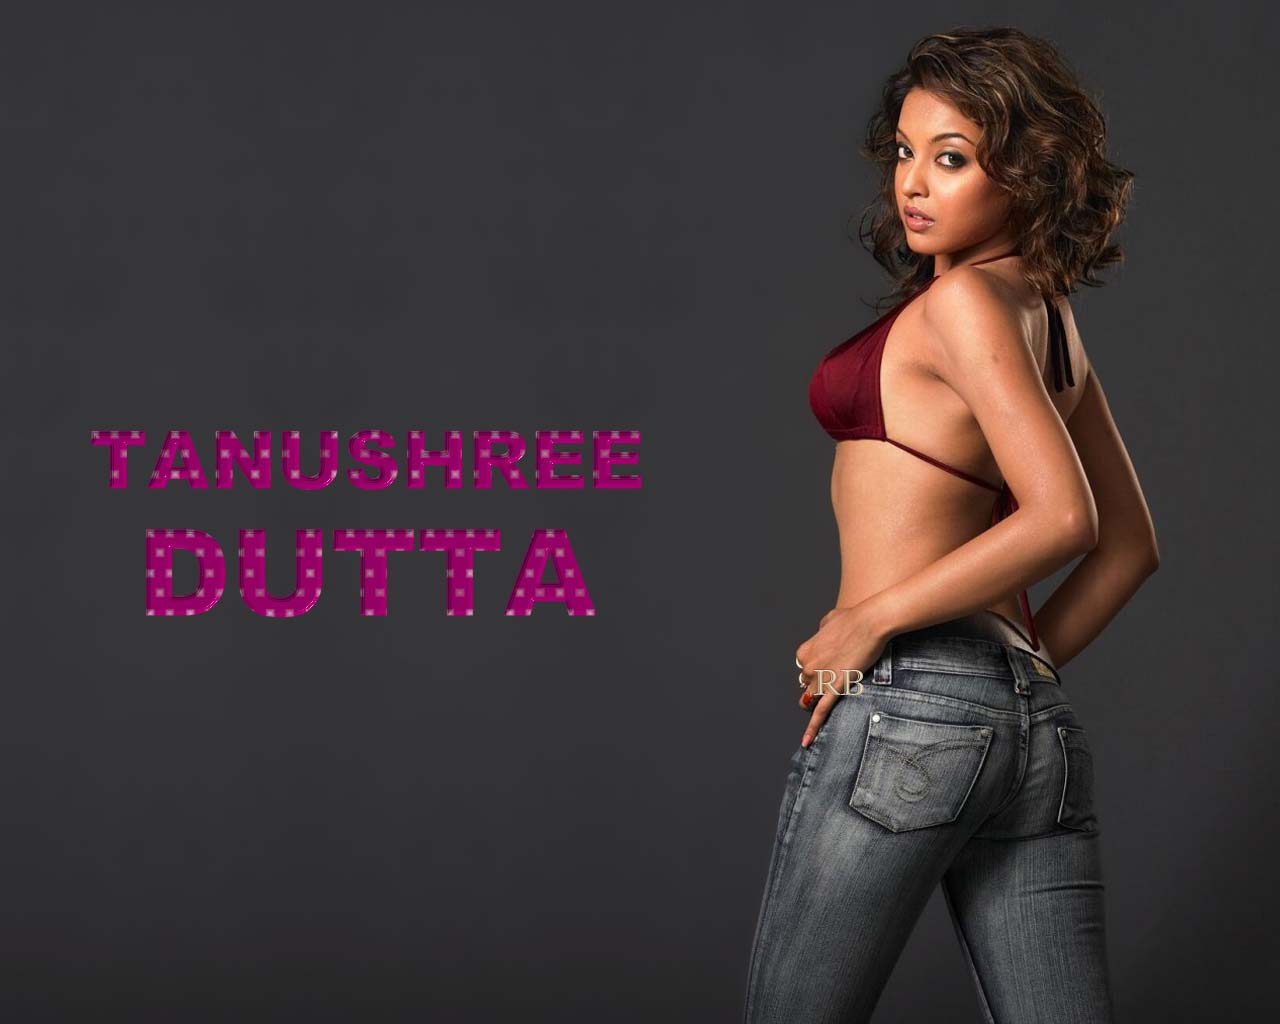 South indian actress swathi naidu in undergarment - 2 part 4